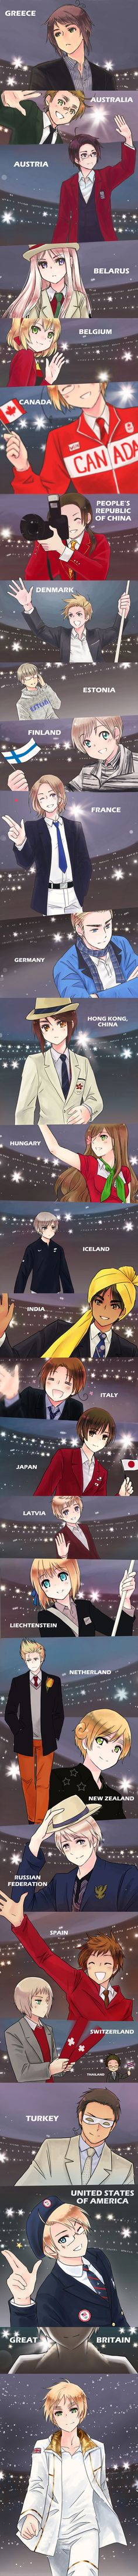 "The Olympics are coming, oh my God. Parade parade parade parade PARADE. (""Olympic parade by ~mikitaka - <3 <3 <3 !!"")"